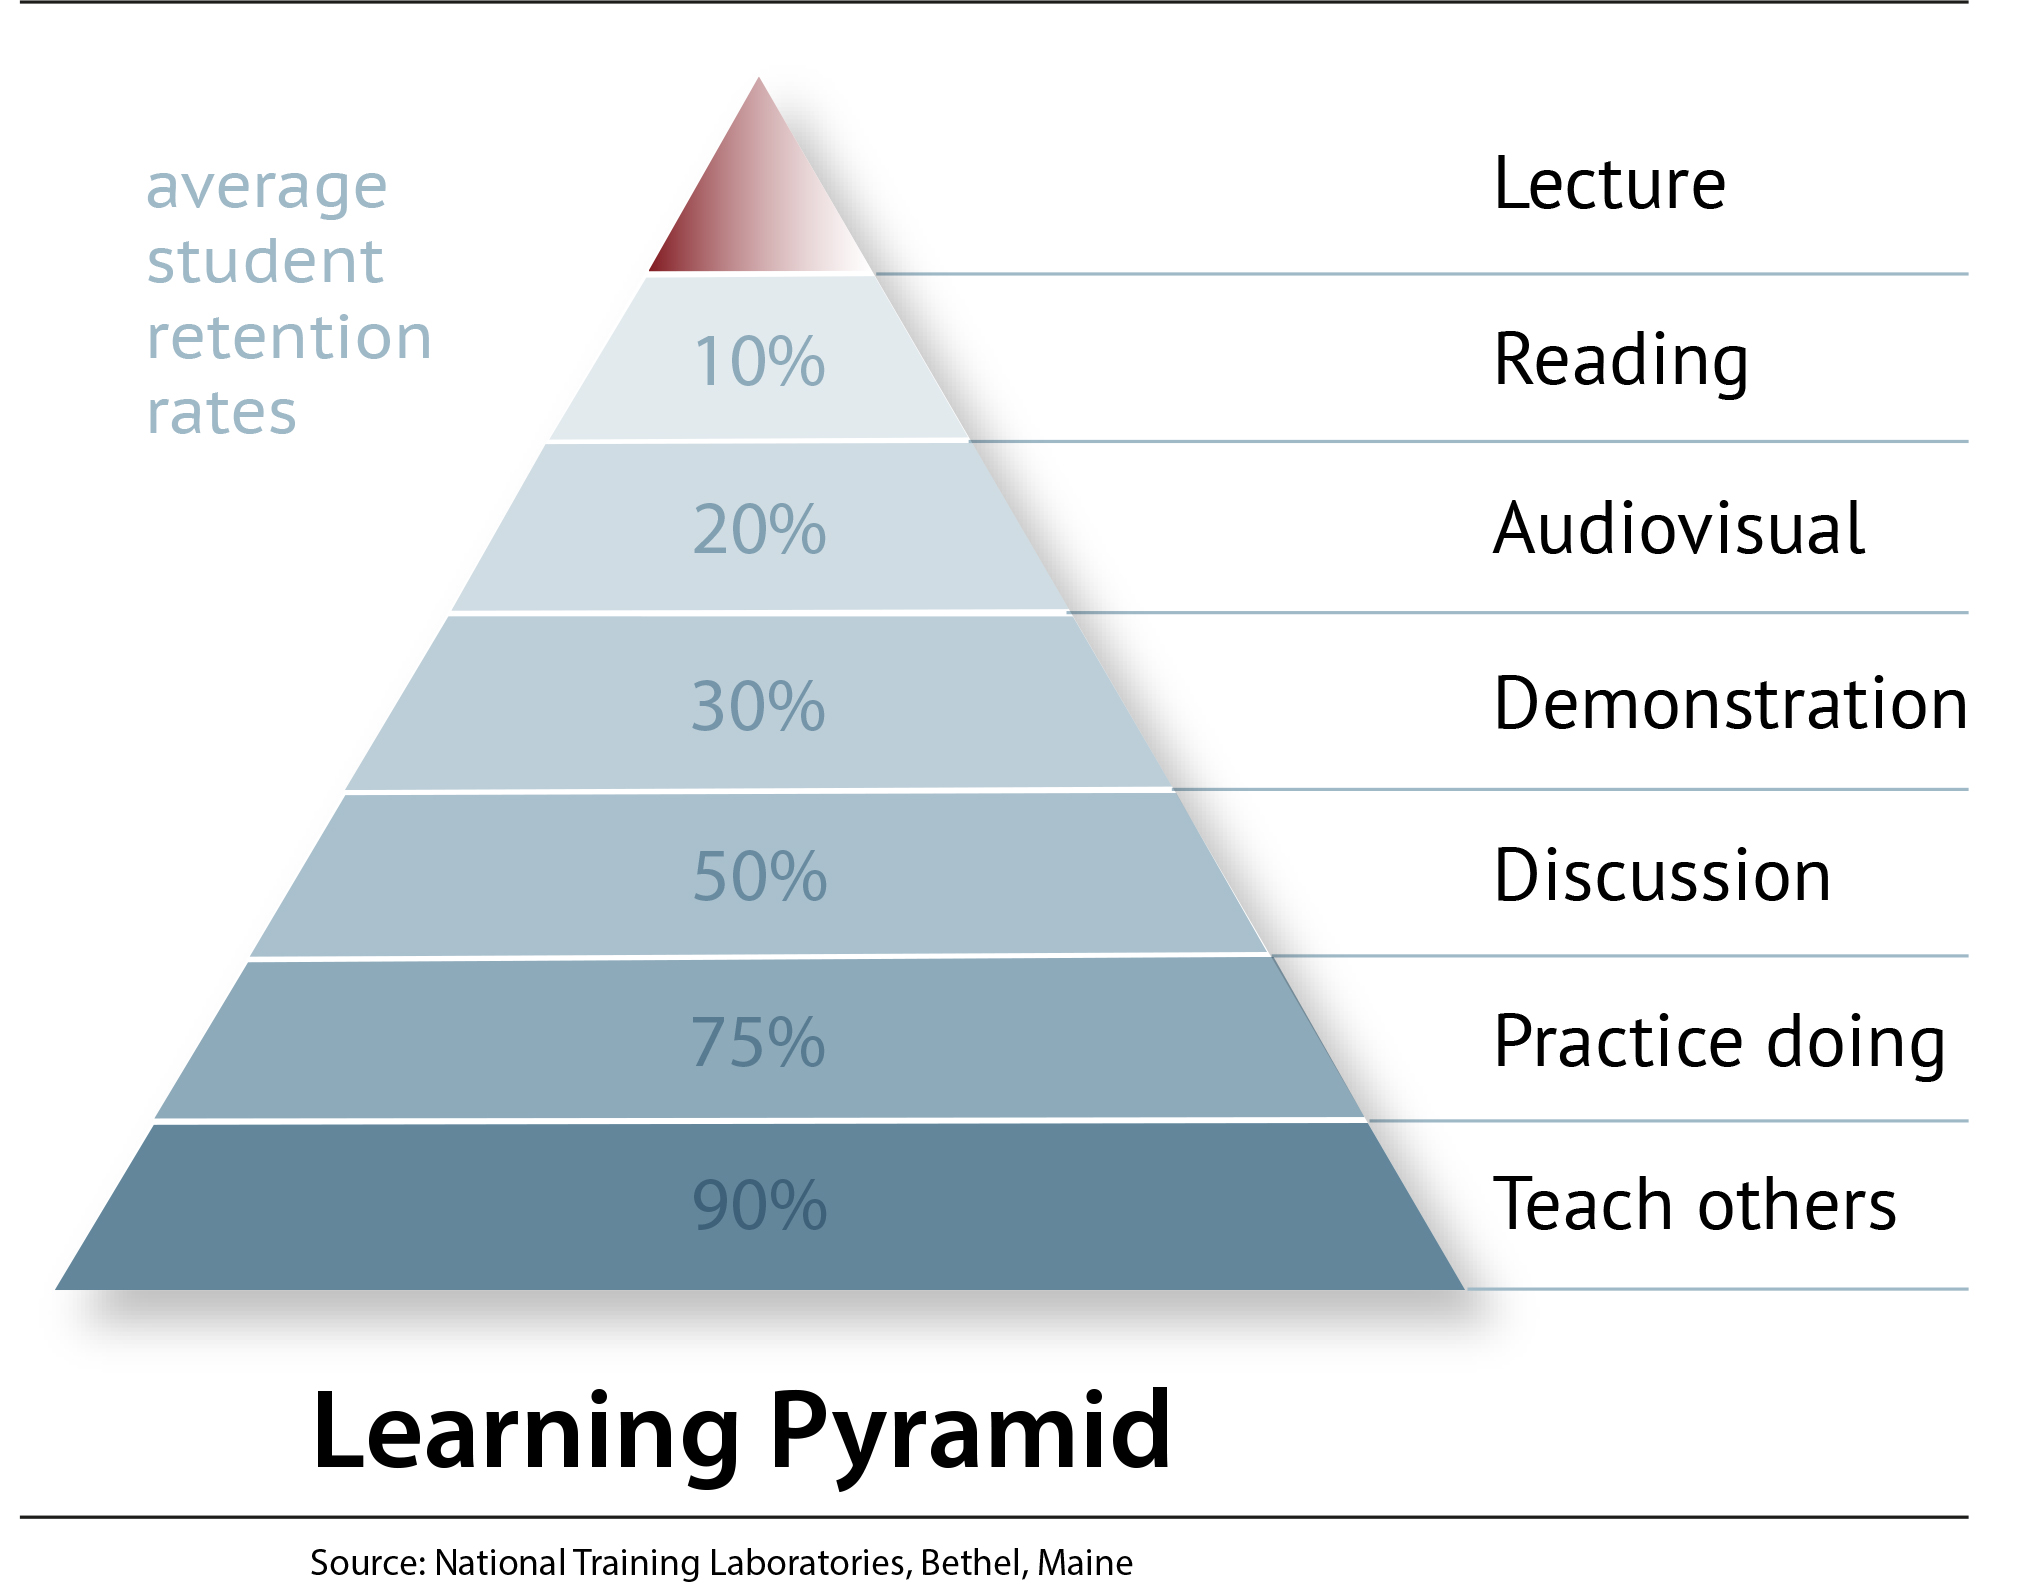 learning Pyramid De Trainingsstudio